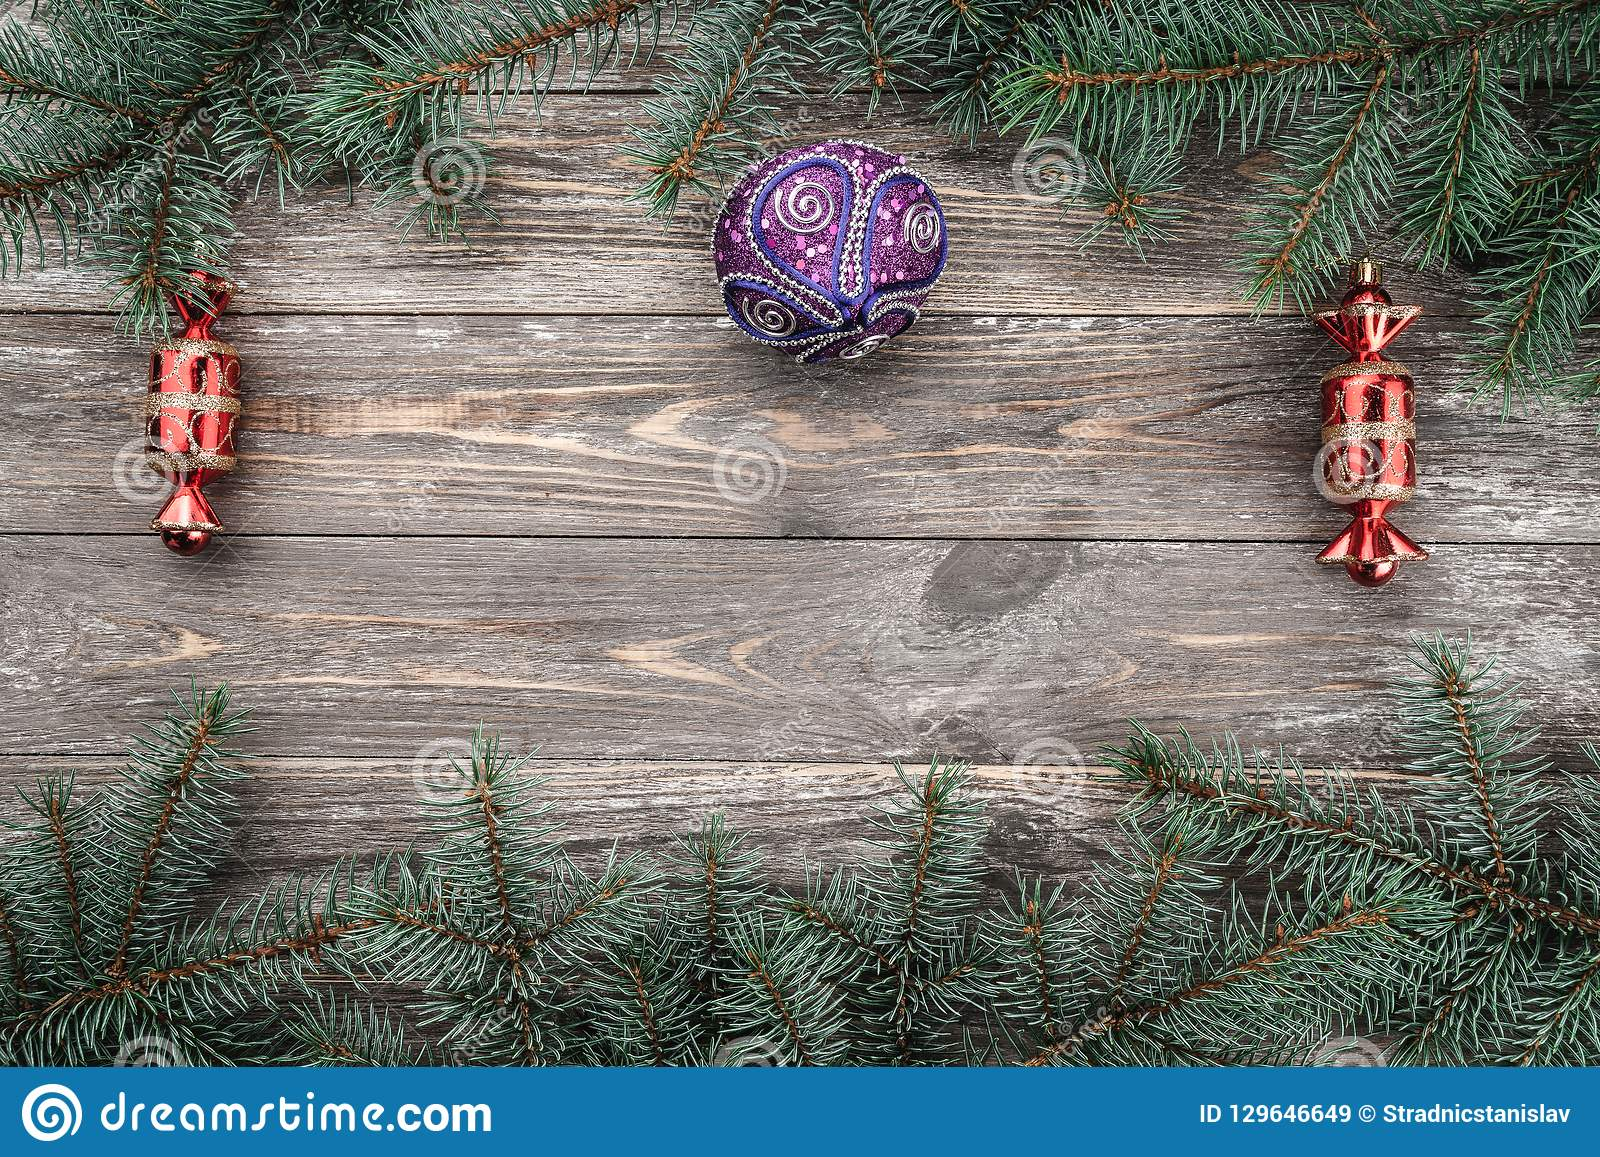 Old wood background with fir branches with toys. Space for a greeting message. Christmas card. Top view